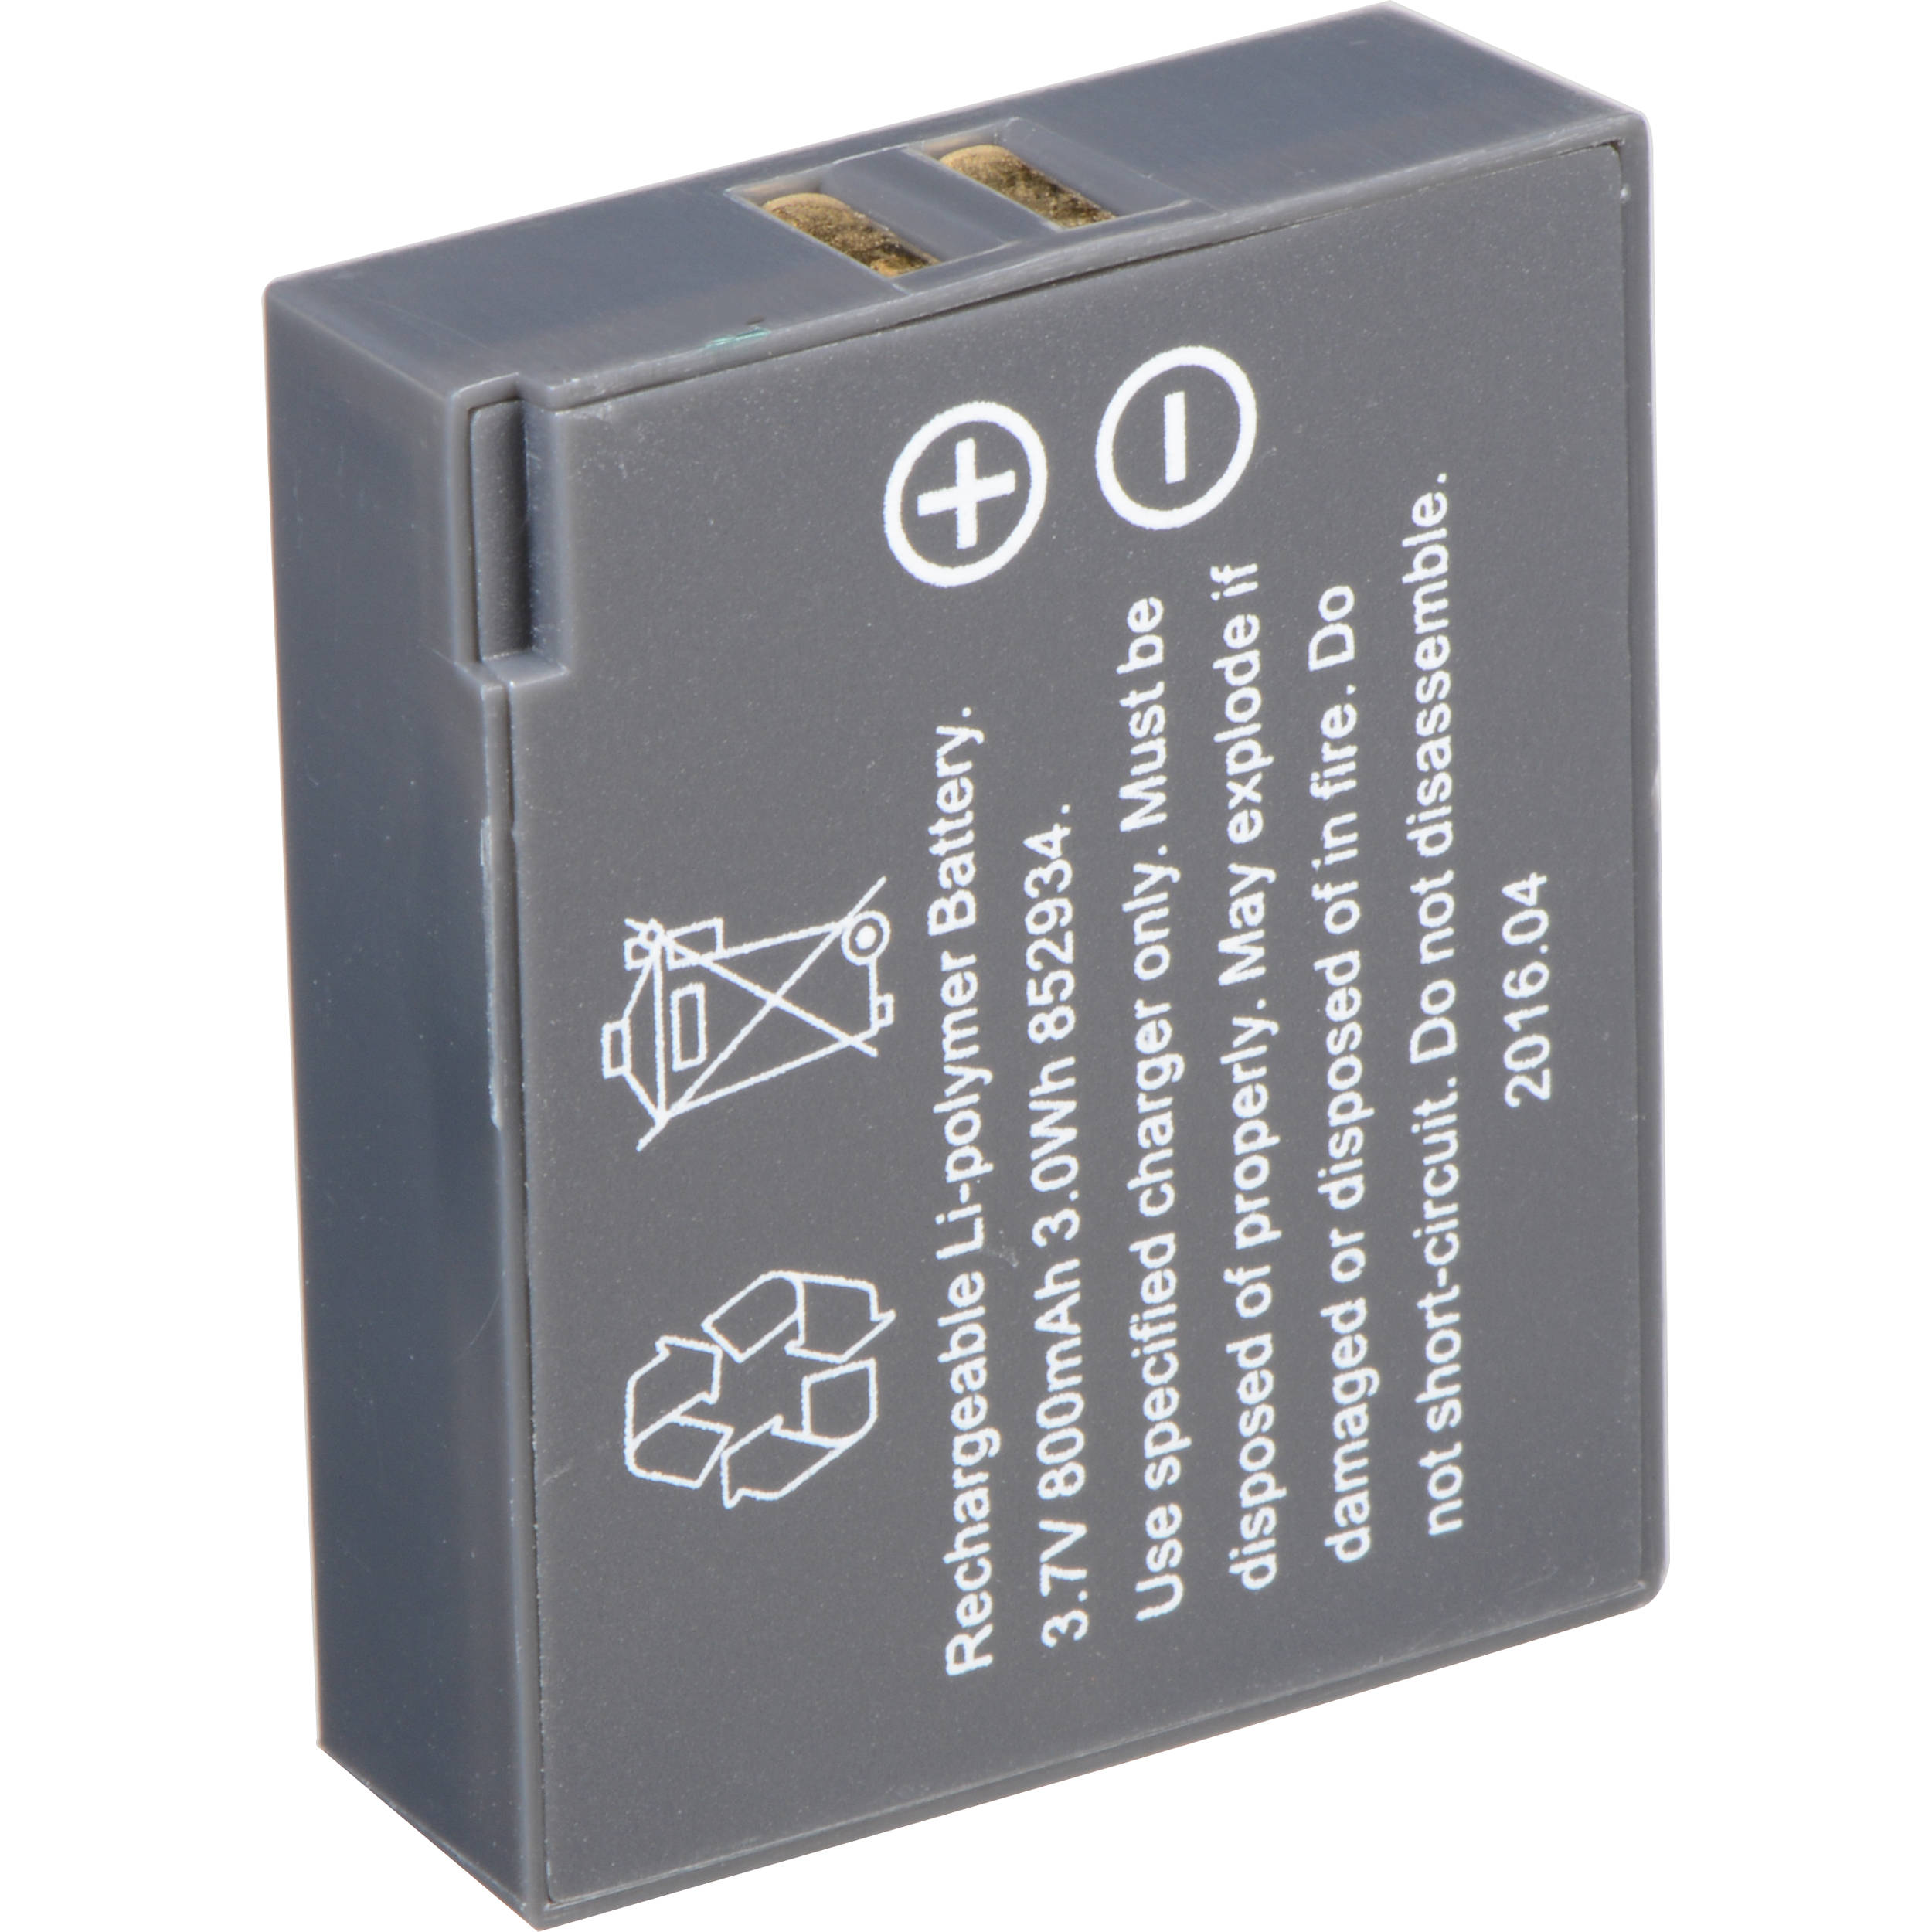 Eartec Rechargeable 3.7V Lithium-Ion Battery for UltraLITE & HUB Systems Accessories & Parts Accessories & Parts